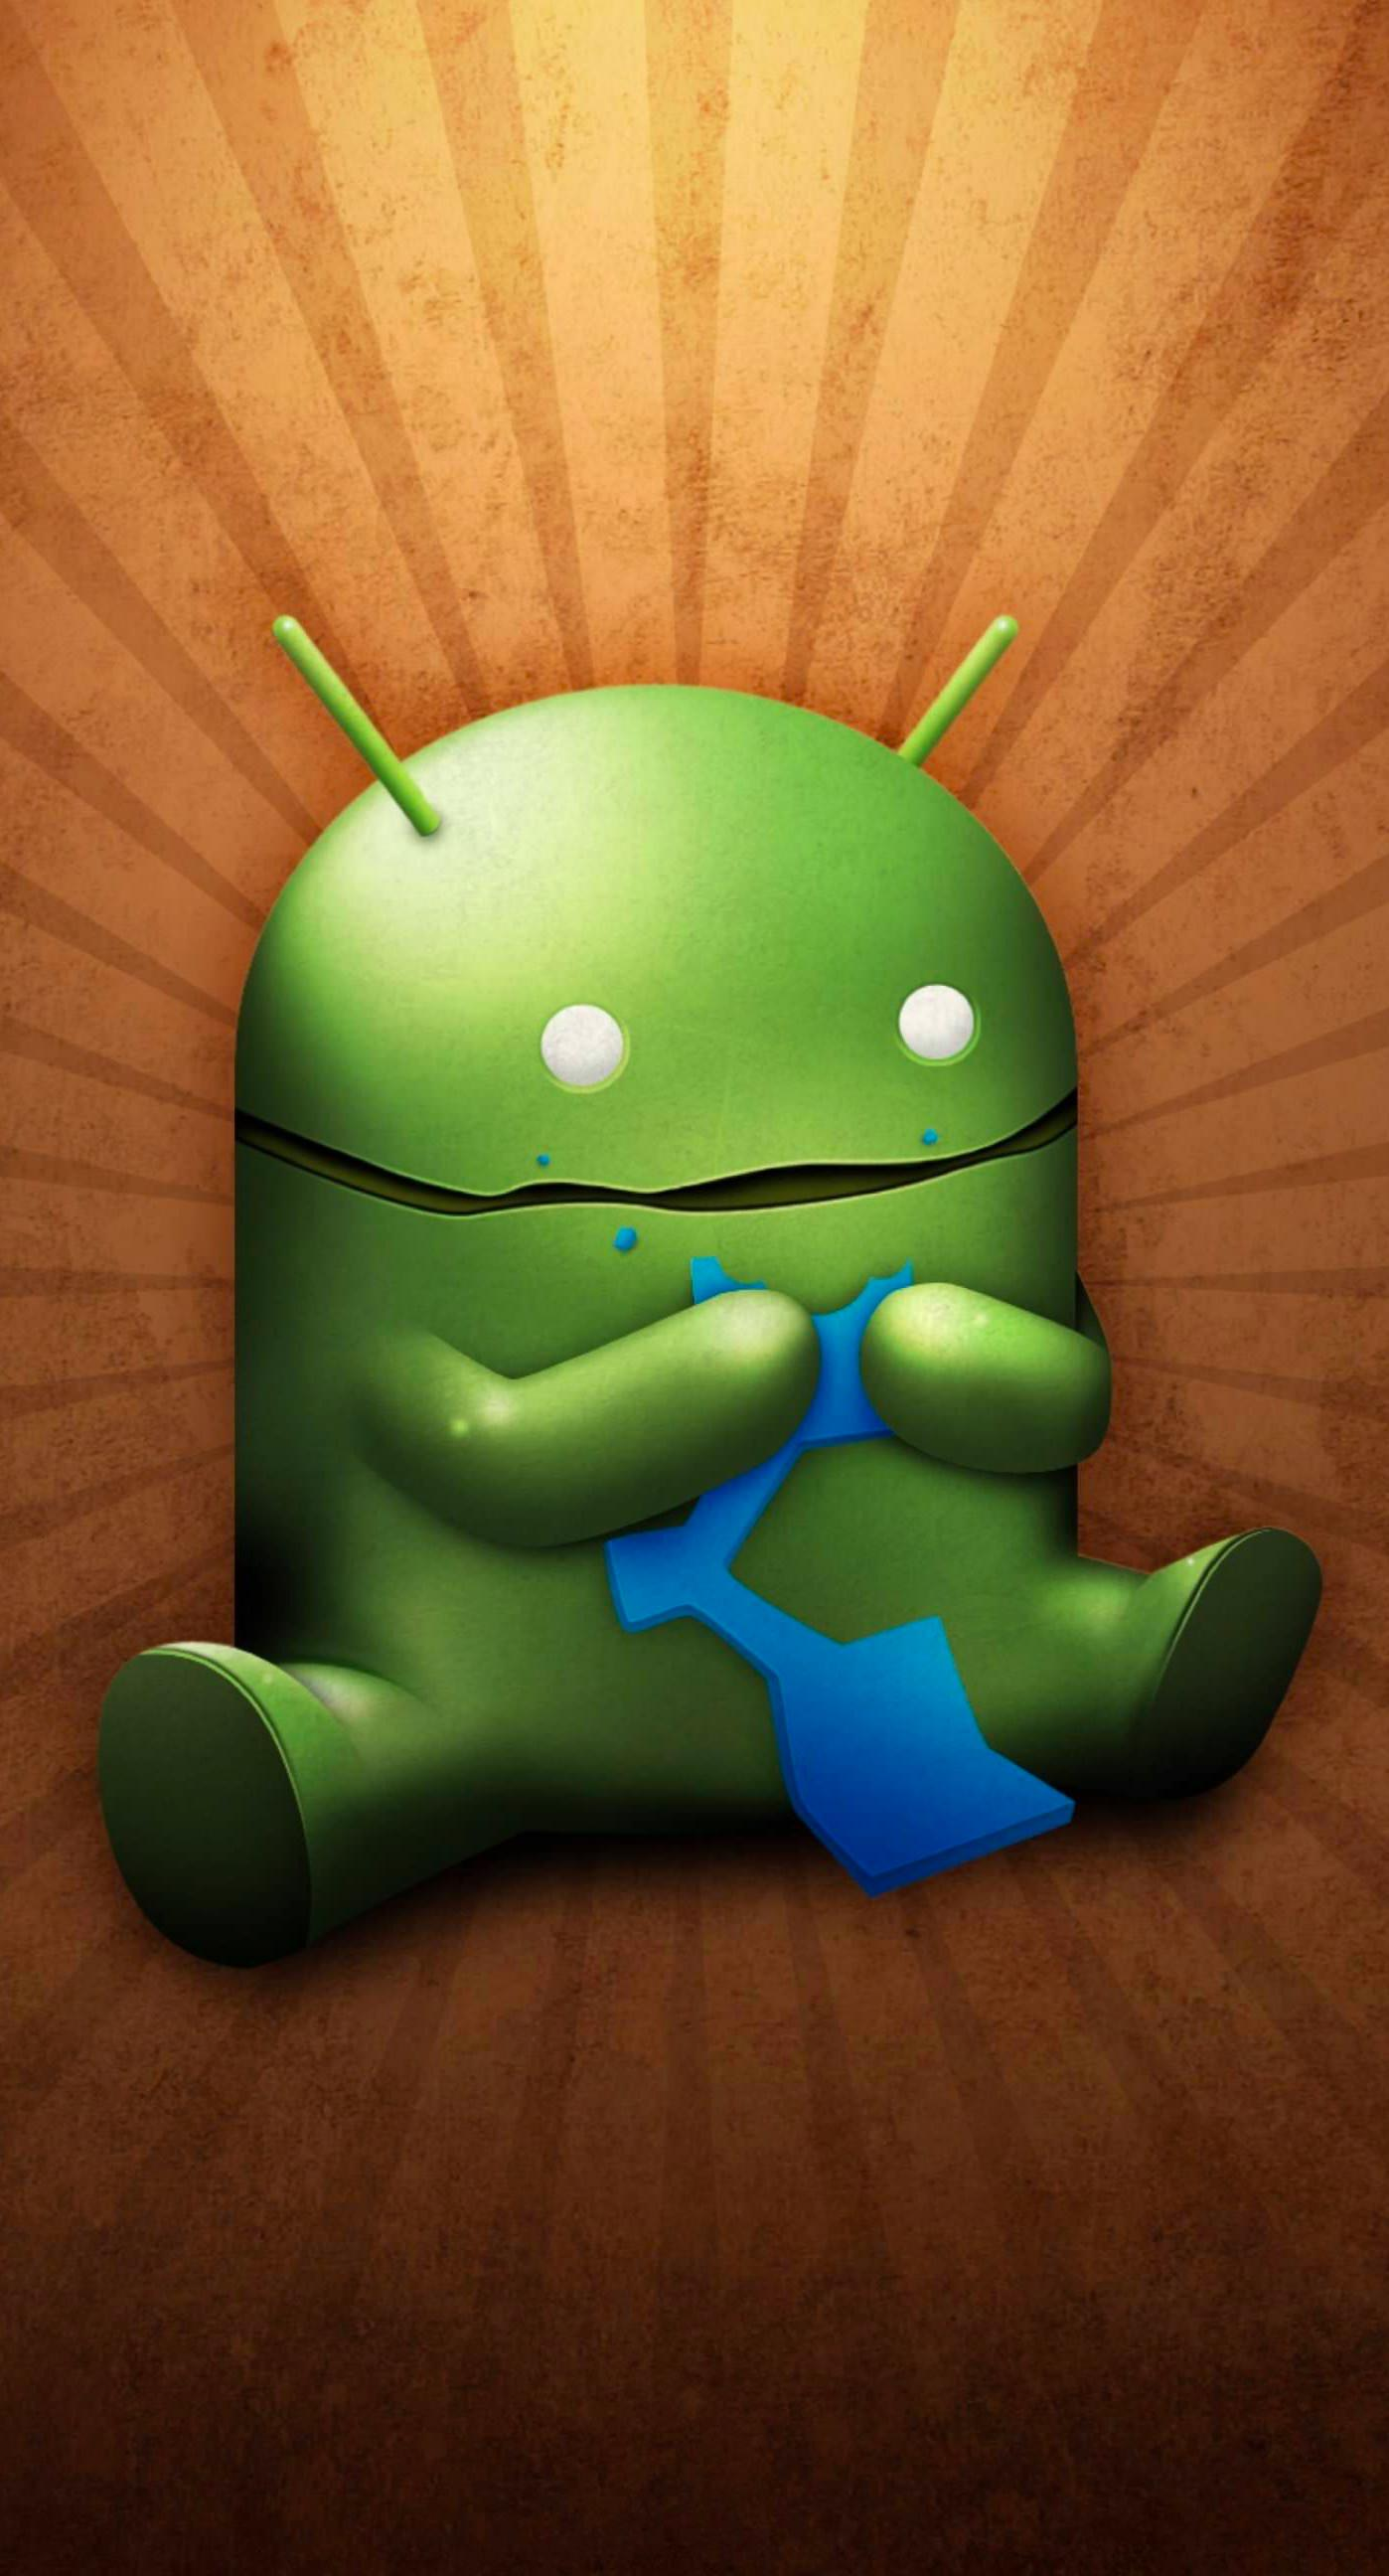 Android download italiano